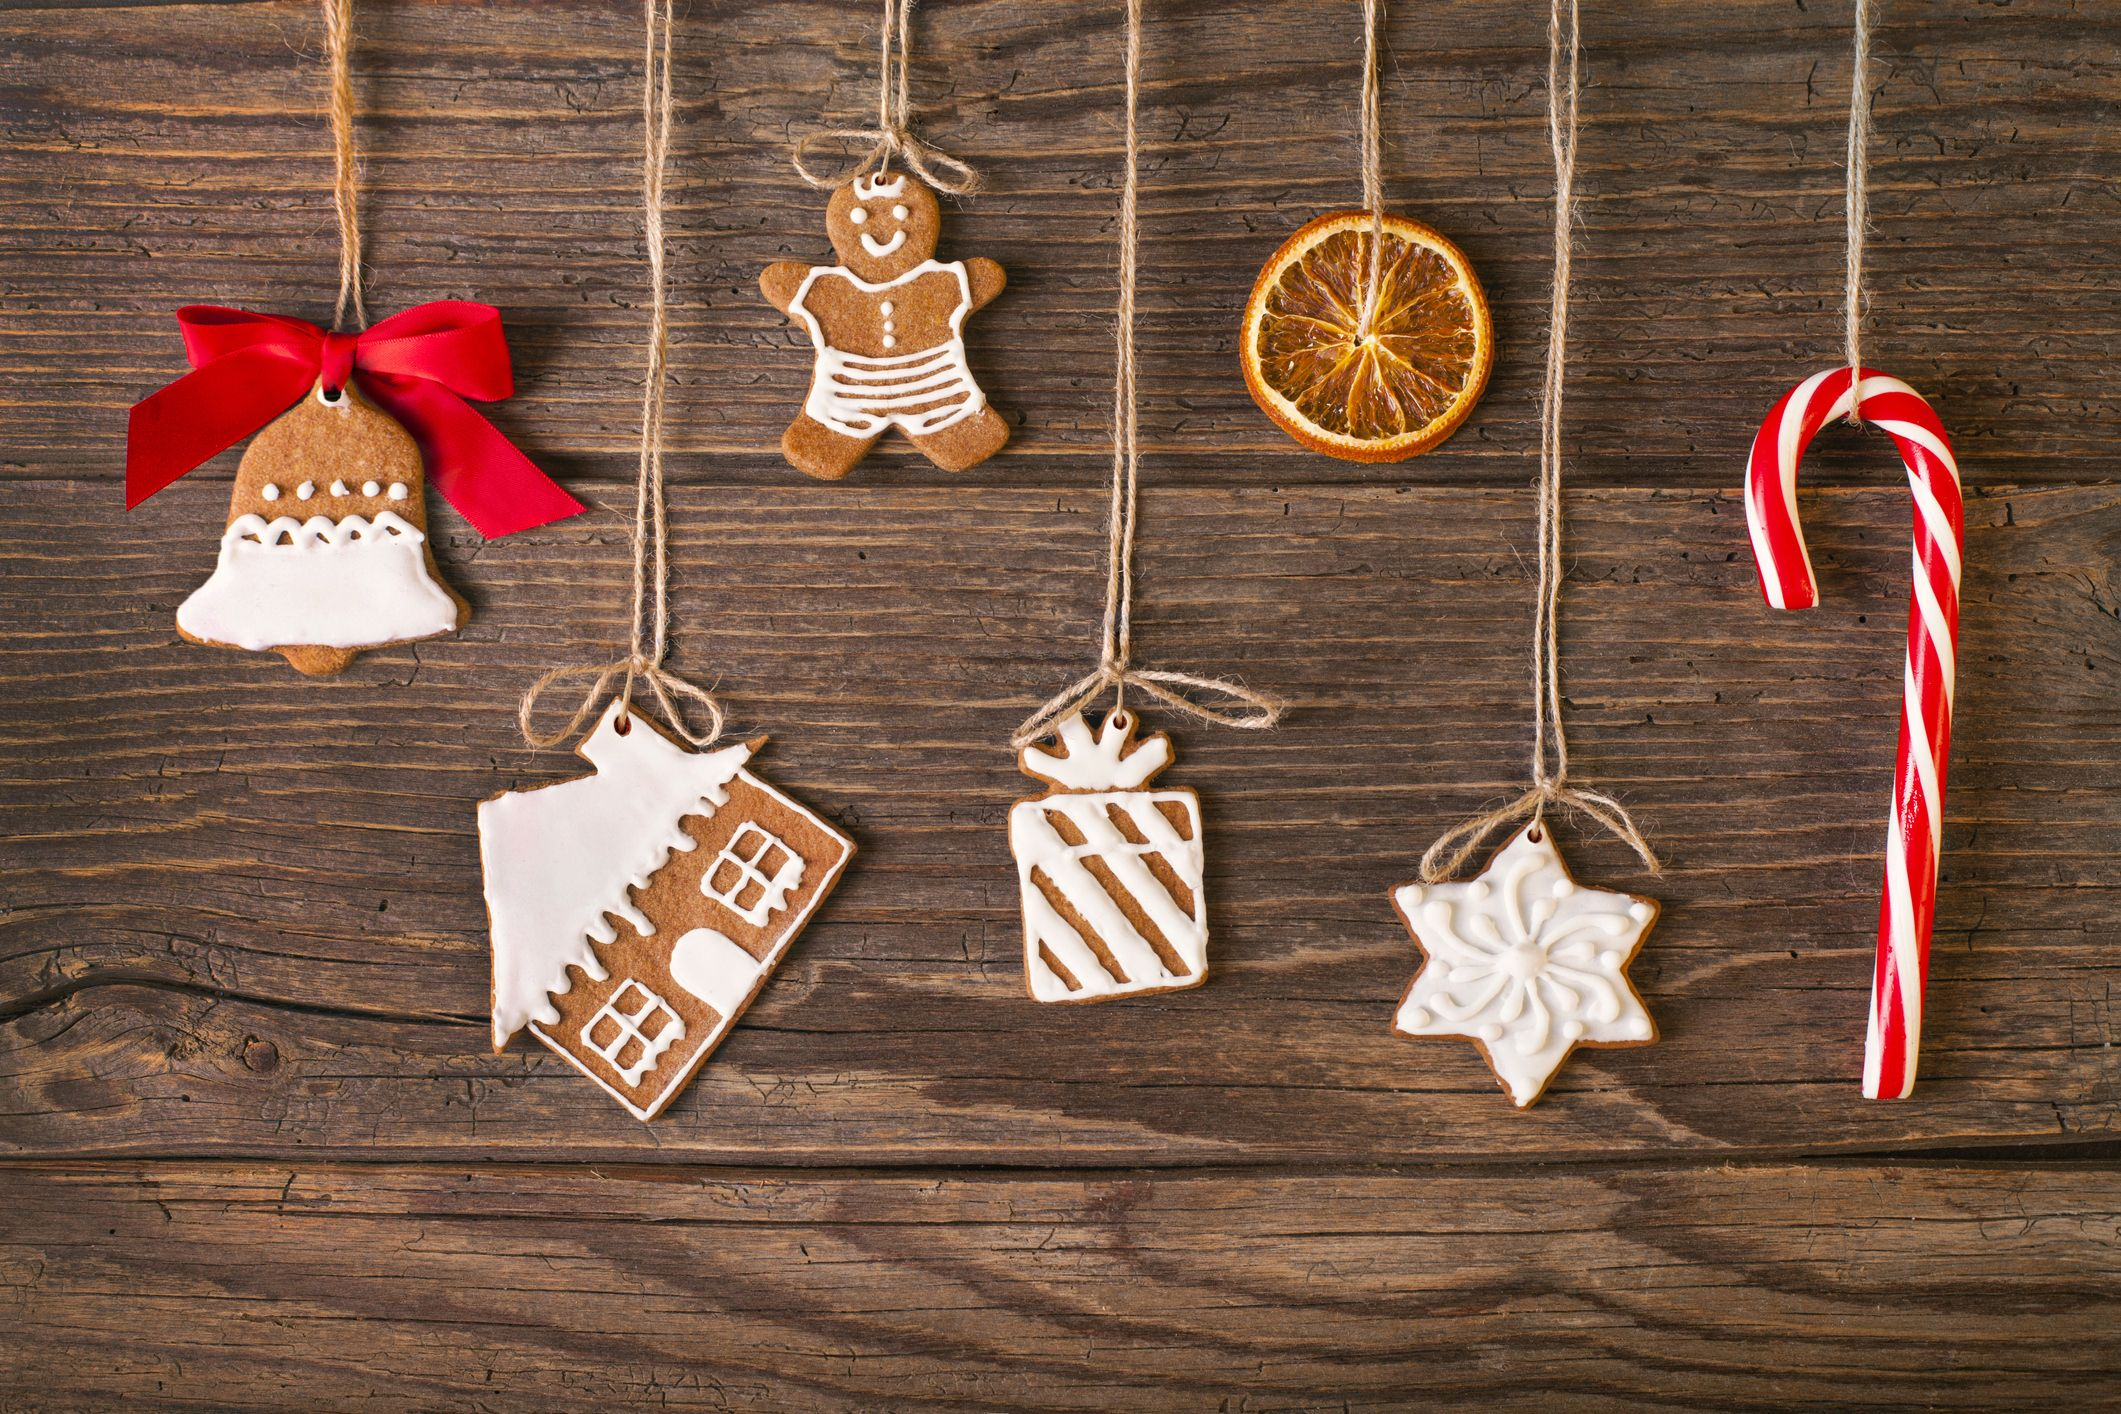 40 Diy Christmas Ornament Ideas Best Homemade Christmas Tree Ornaments